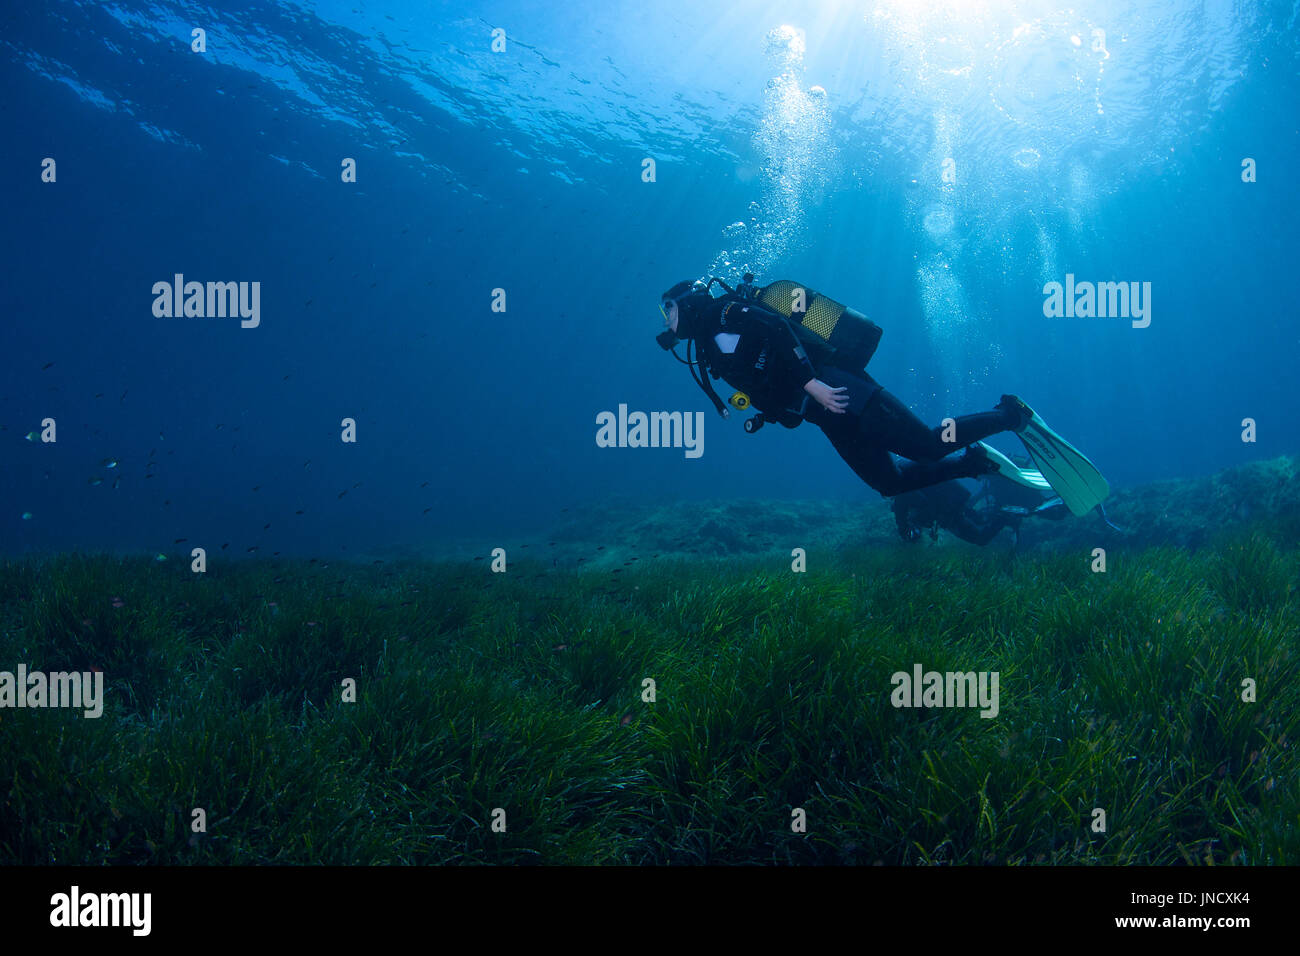 Scuba diving at Ses Salines Natural Park at Formentera (Balearic Islands, Spain) - Stock Image